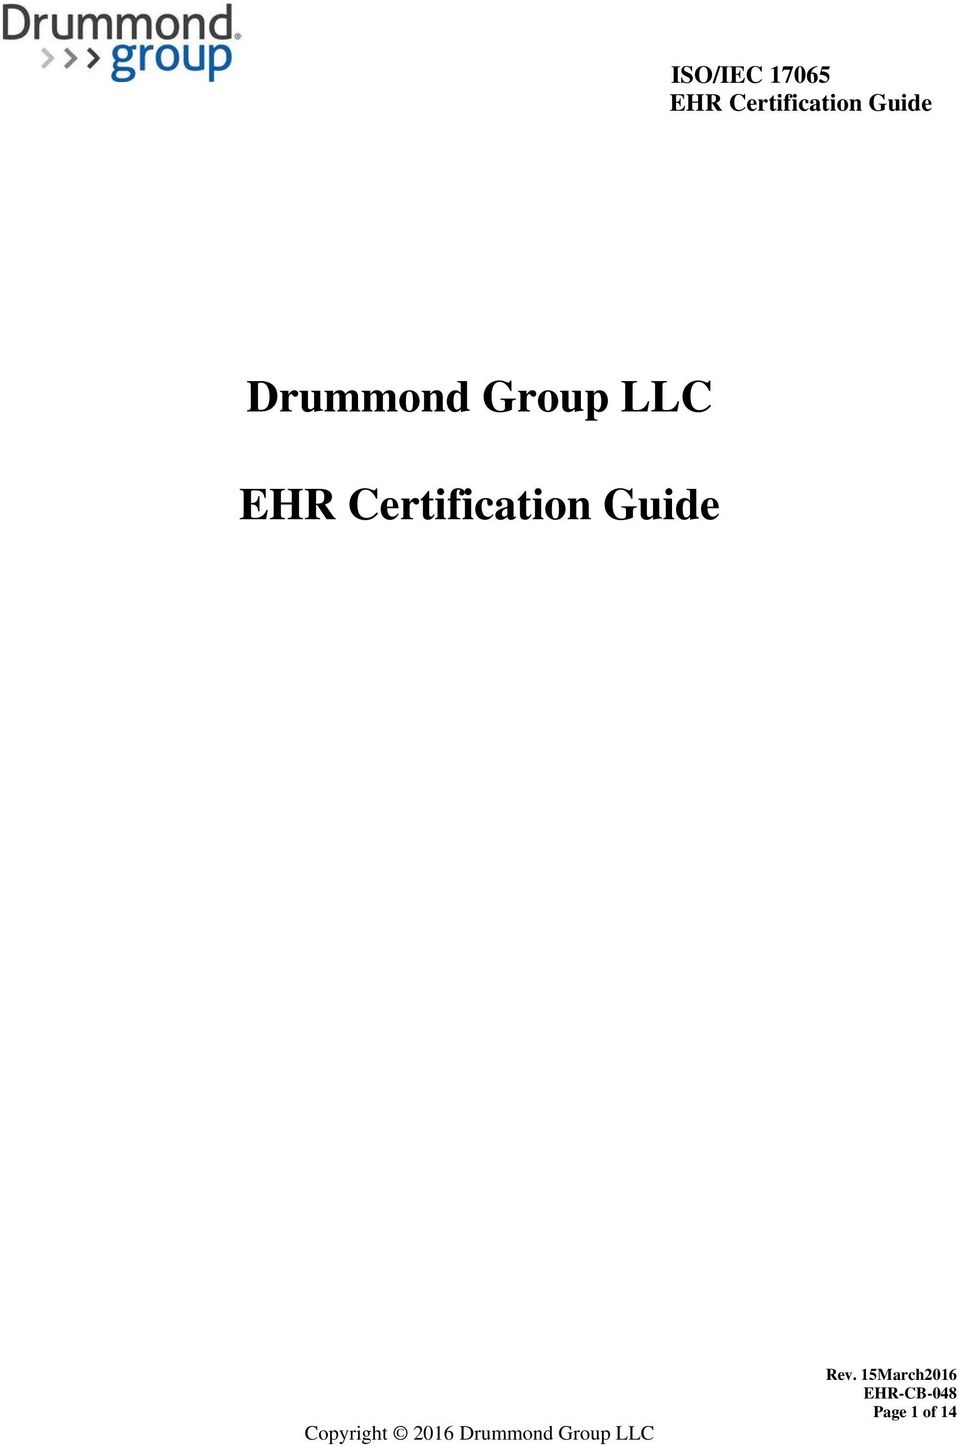 Drummond Group Llc Ehr Certification Guide Pdf